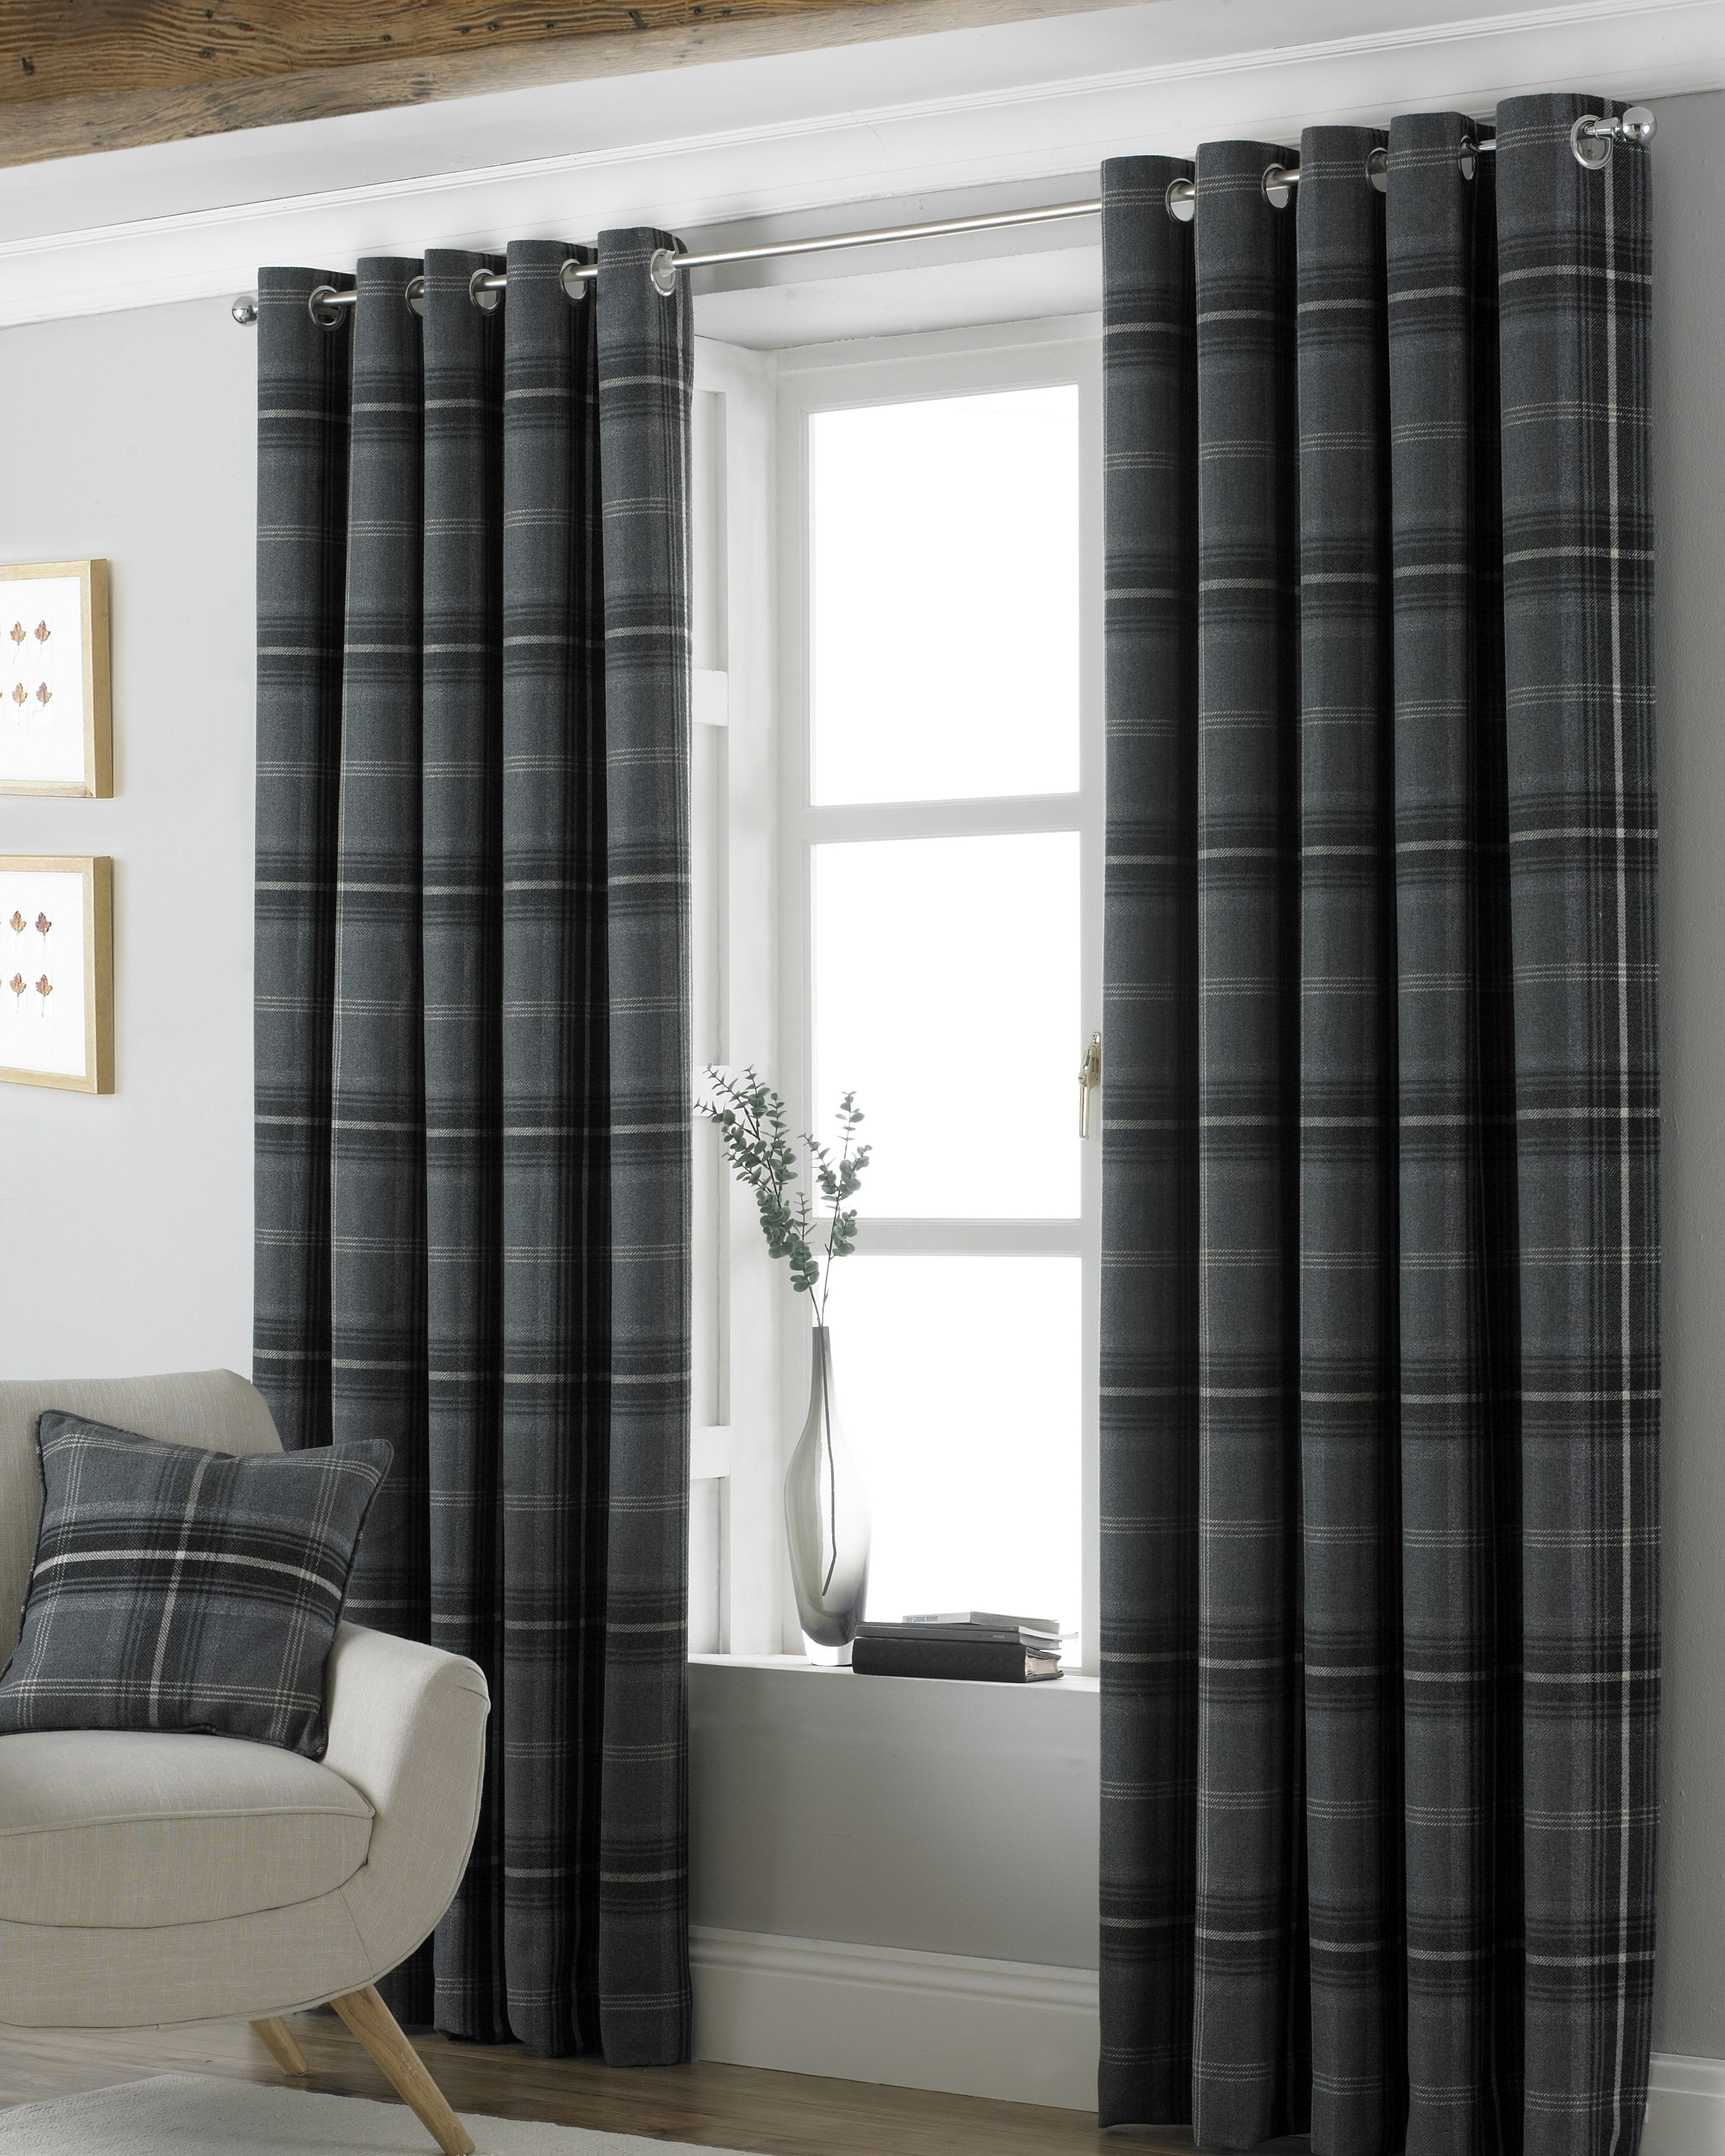 Aviemore Wool Effect Eyelet Curtains in Grey